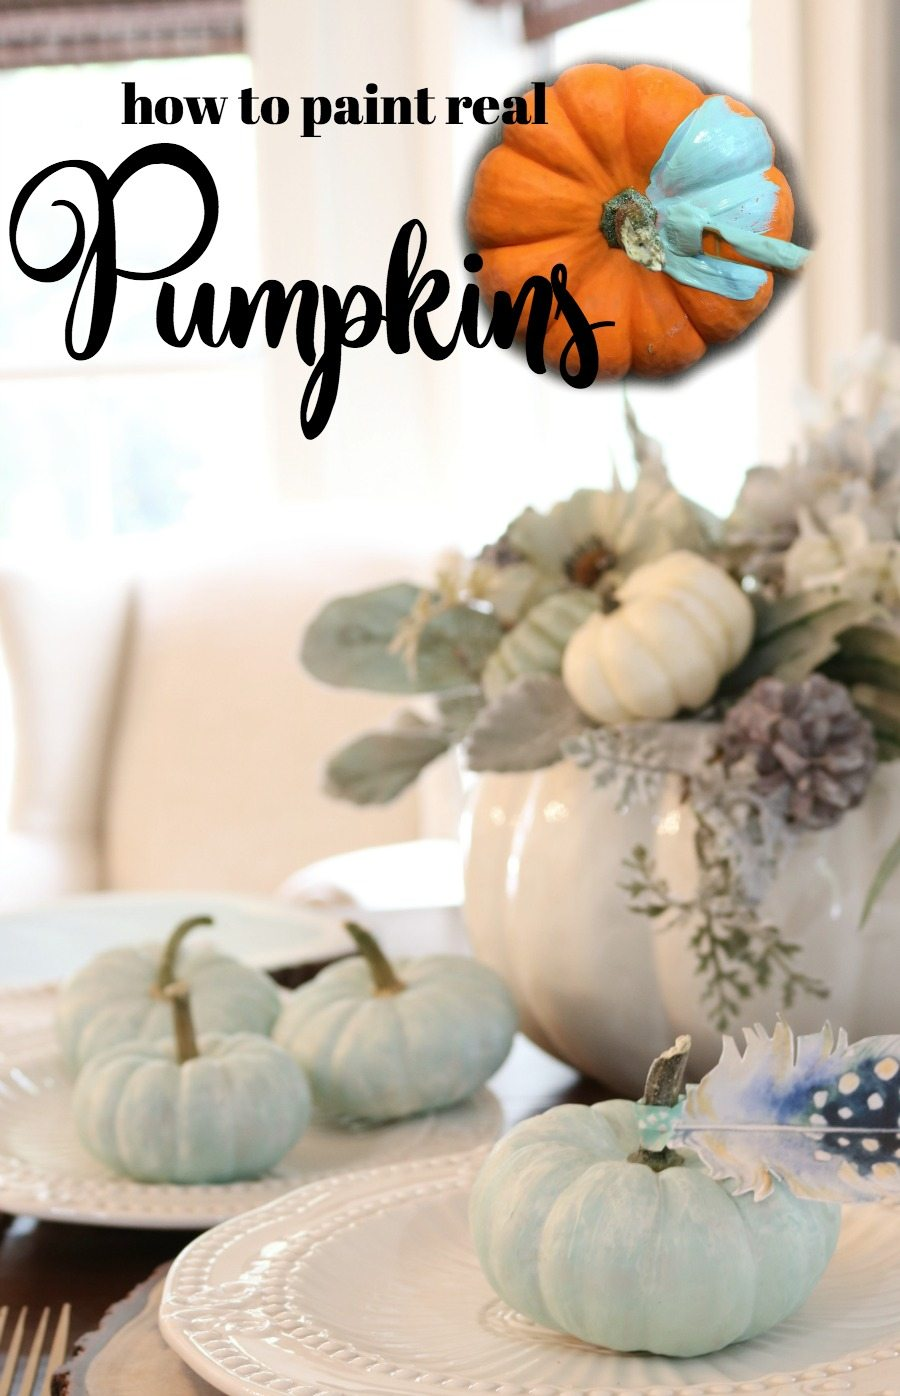 How to paint real pumpkins the right way. They last! Paint any color you like! #fall #pumpkins #paintrealpumpkins #refreshresytle